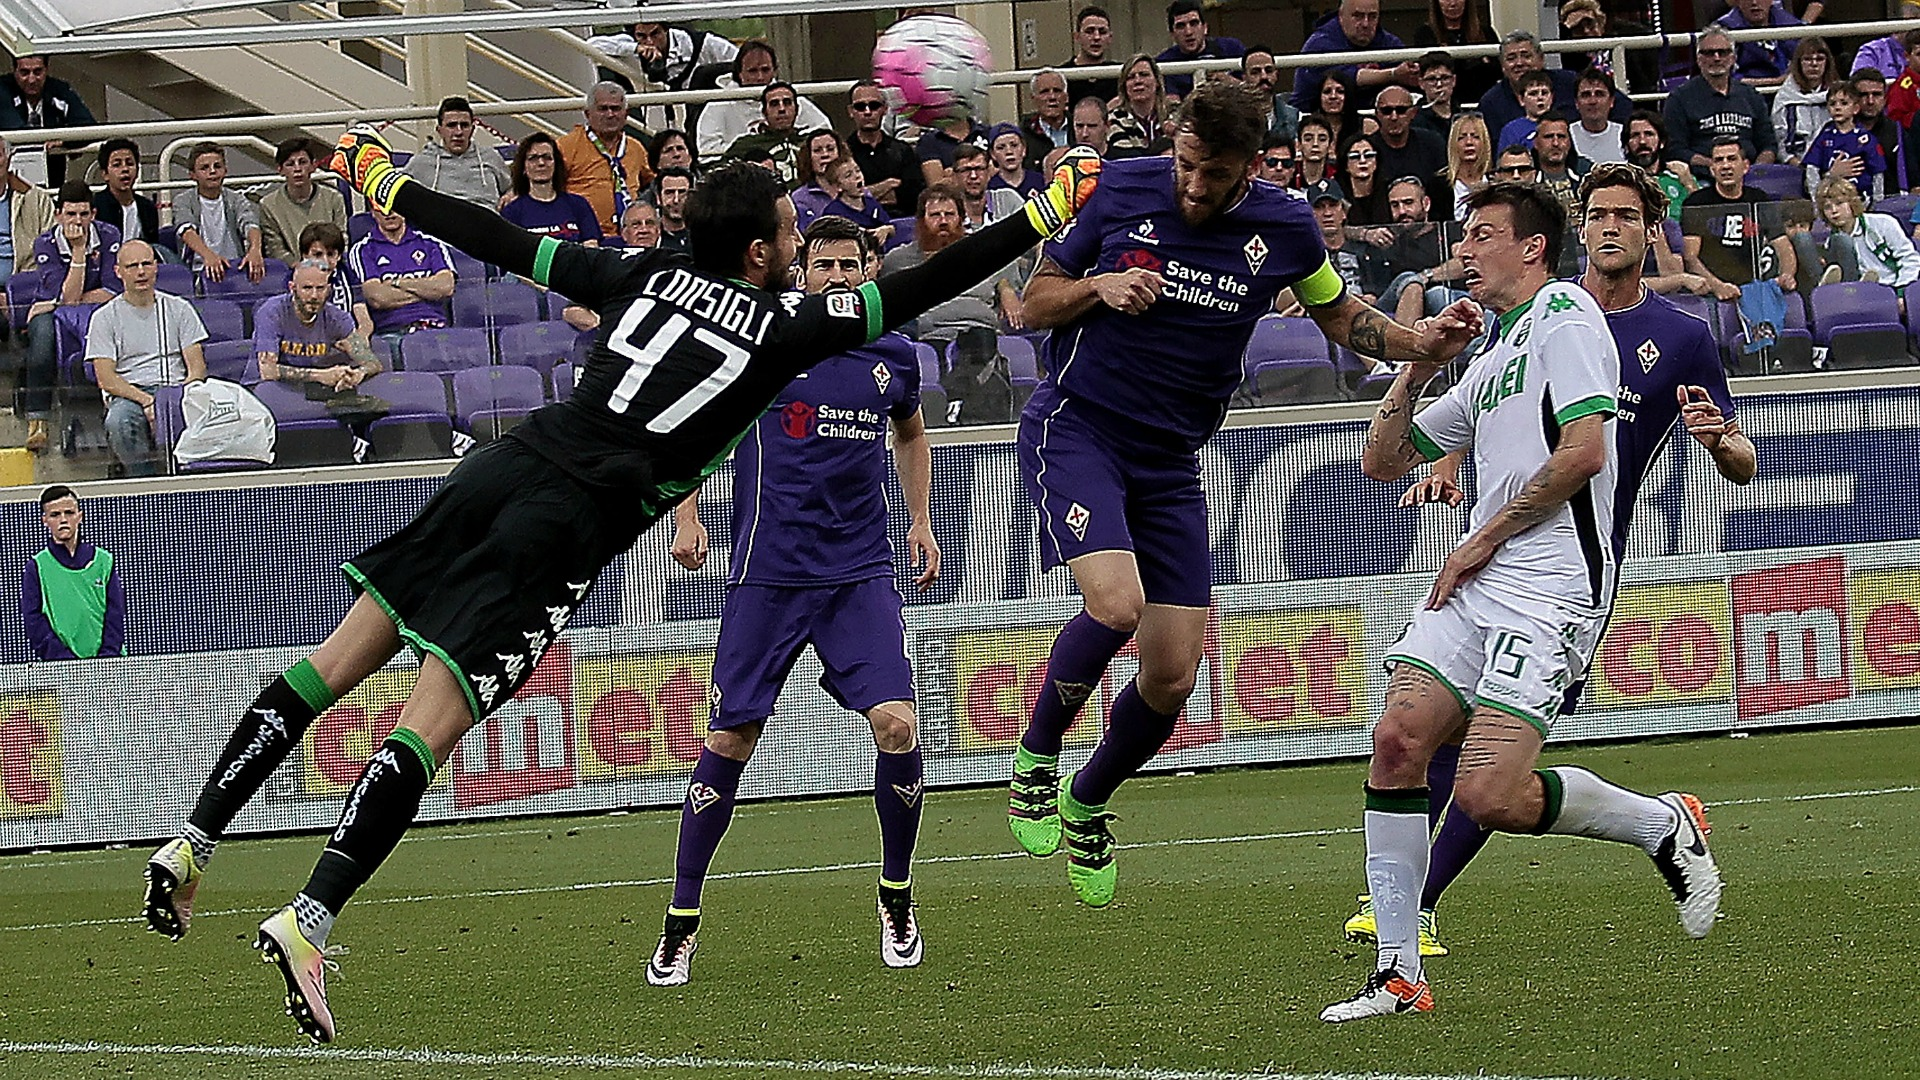 Video: Fiorentina vs Sassuolo